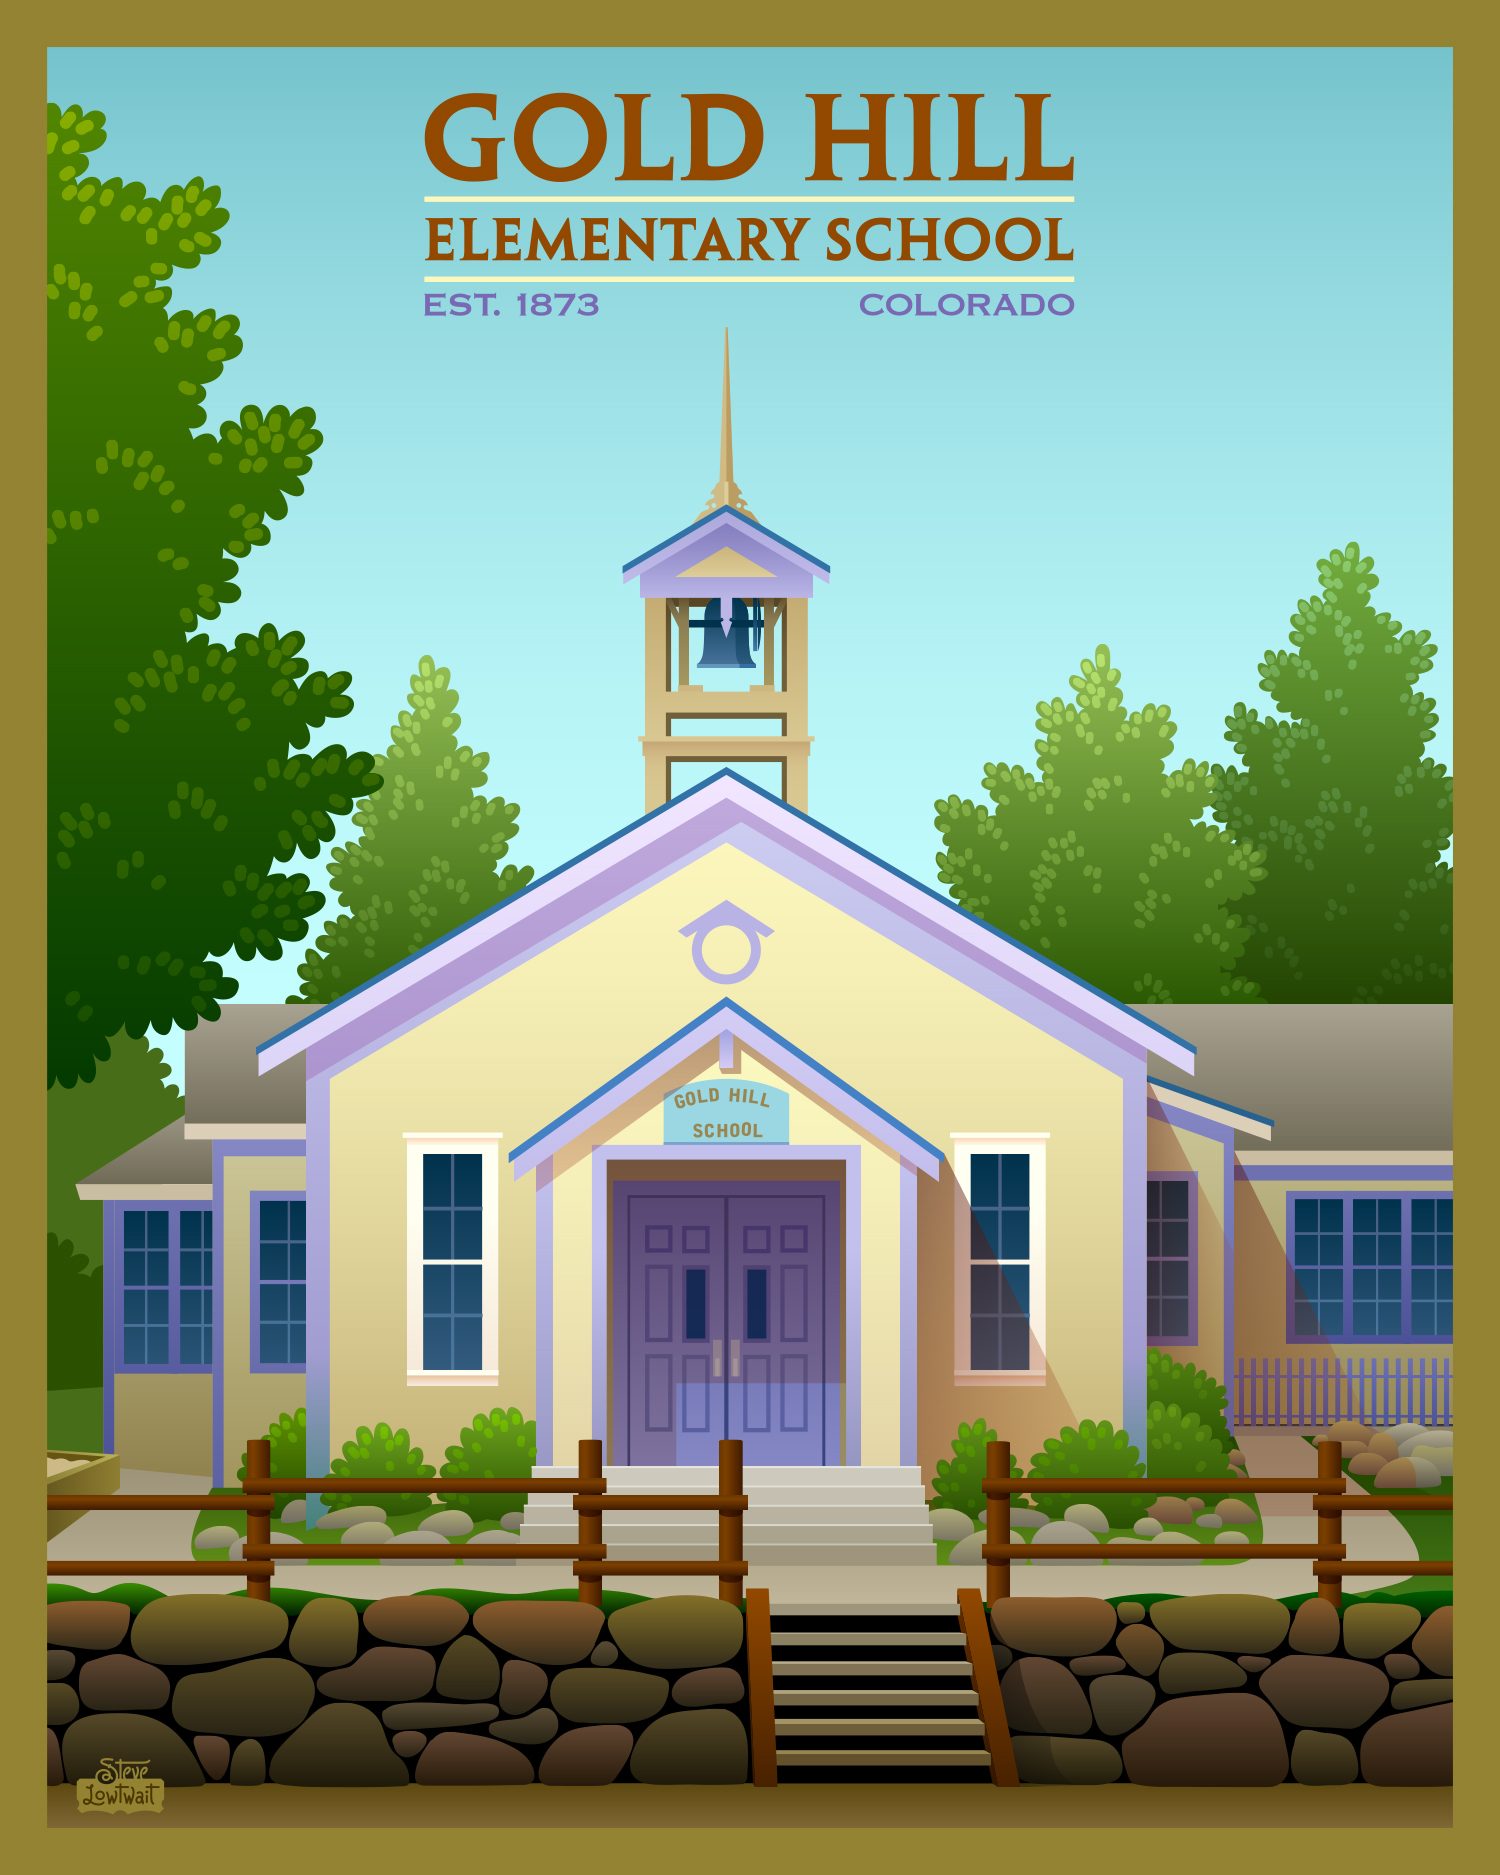 Gold Hill Elementary School